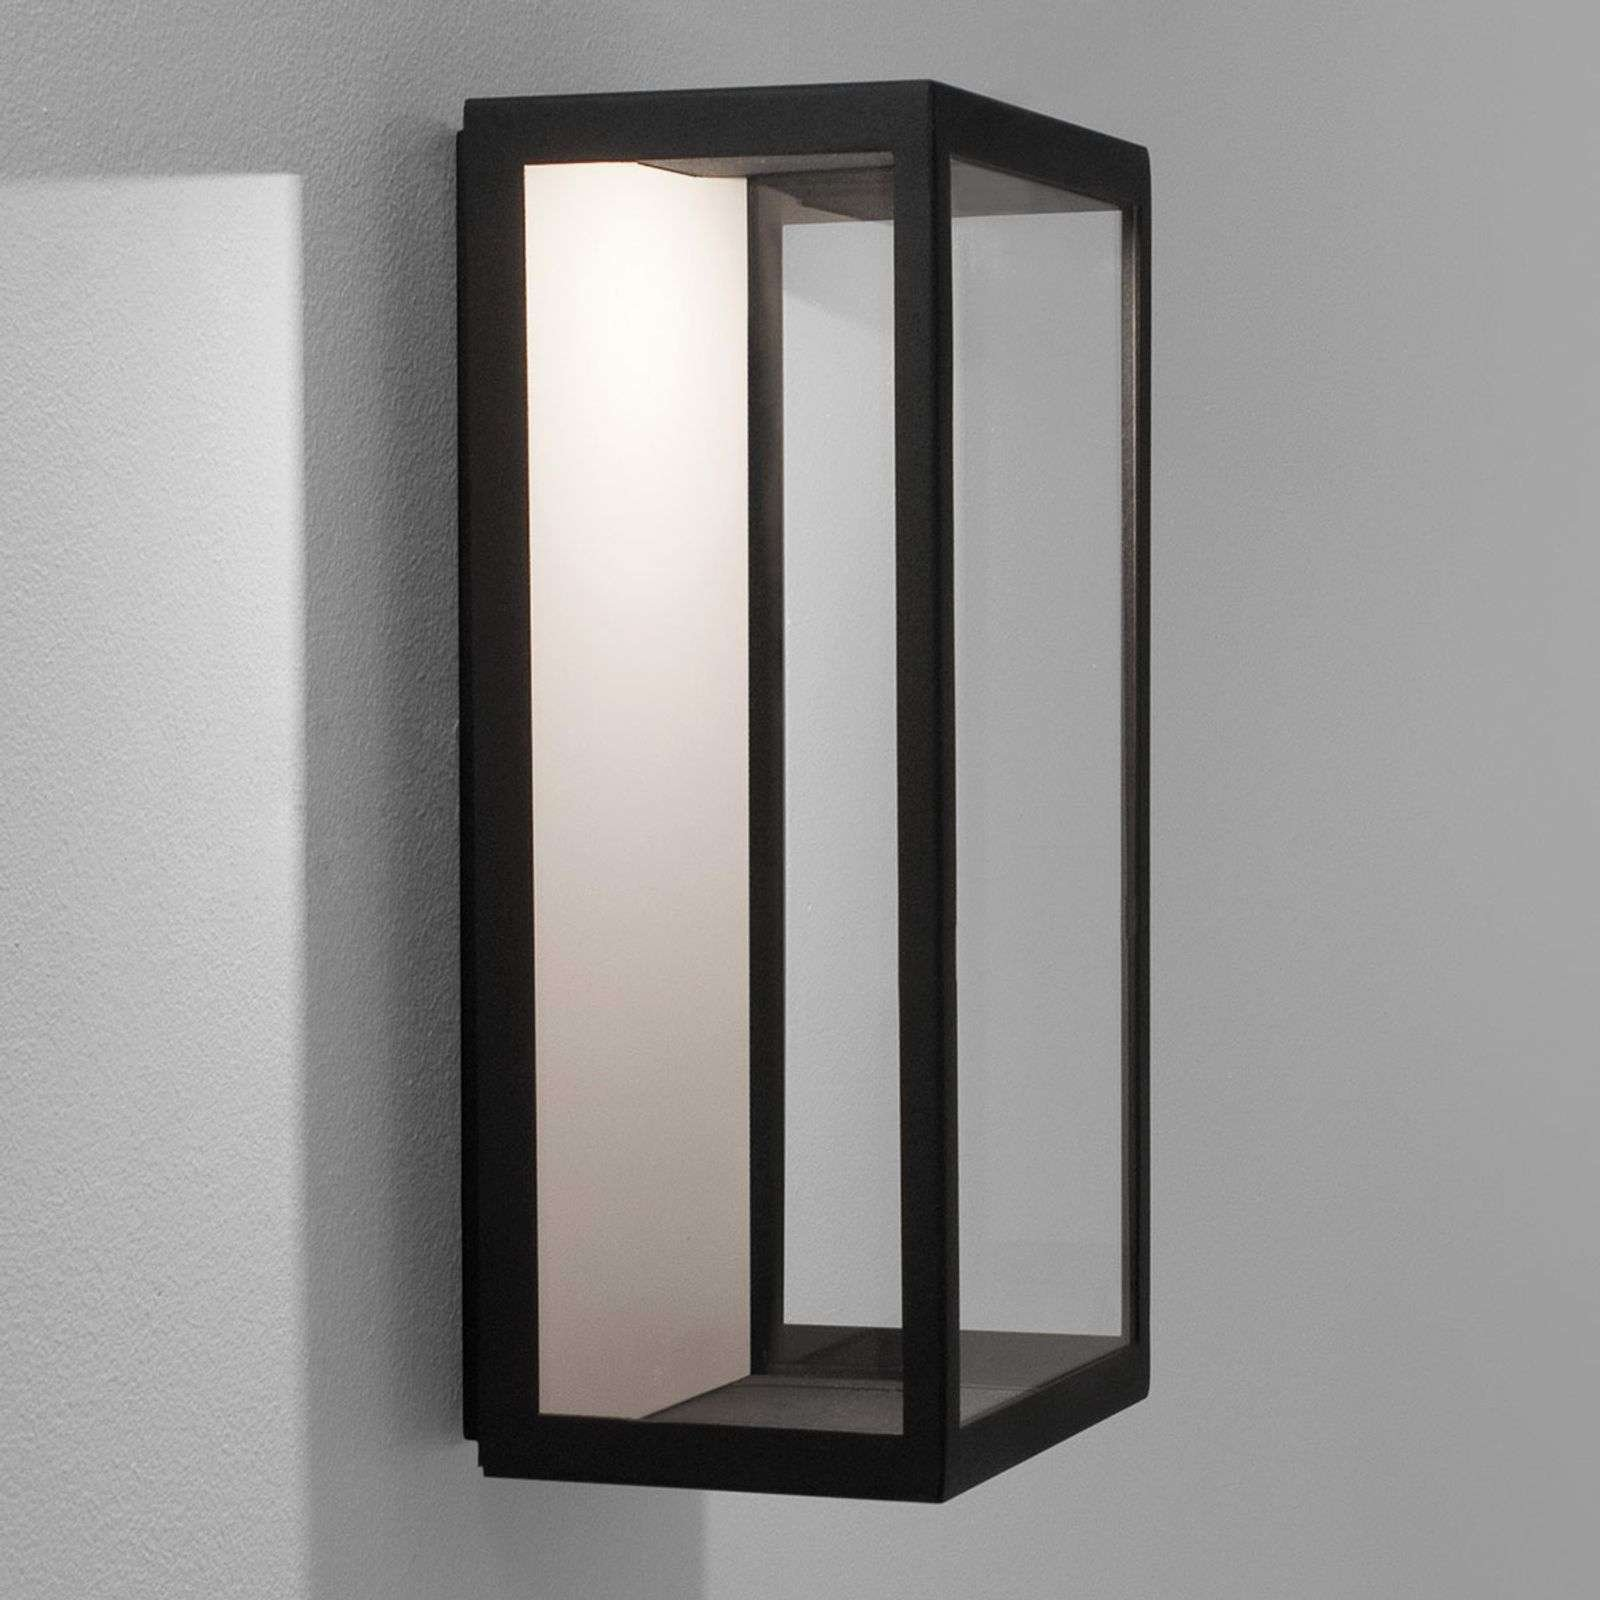 LED outdoor wall light Puzzle in black